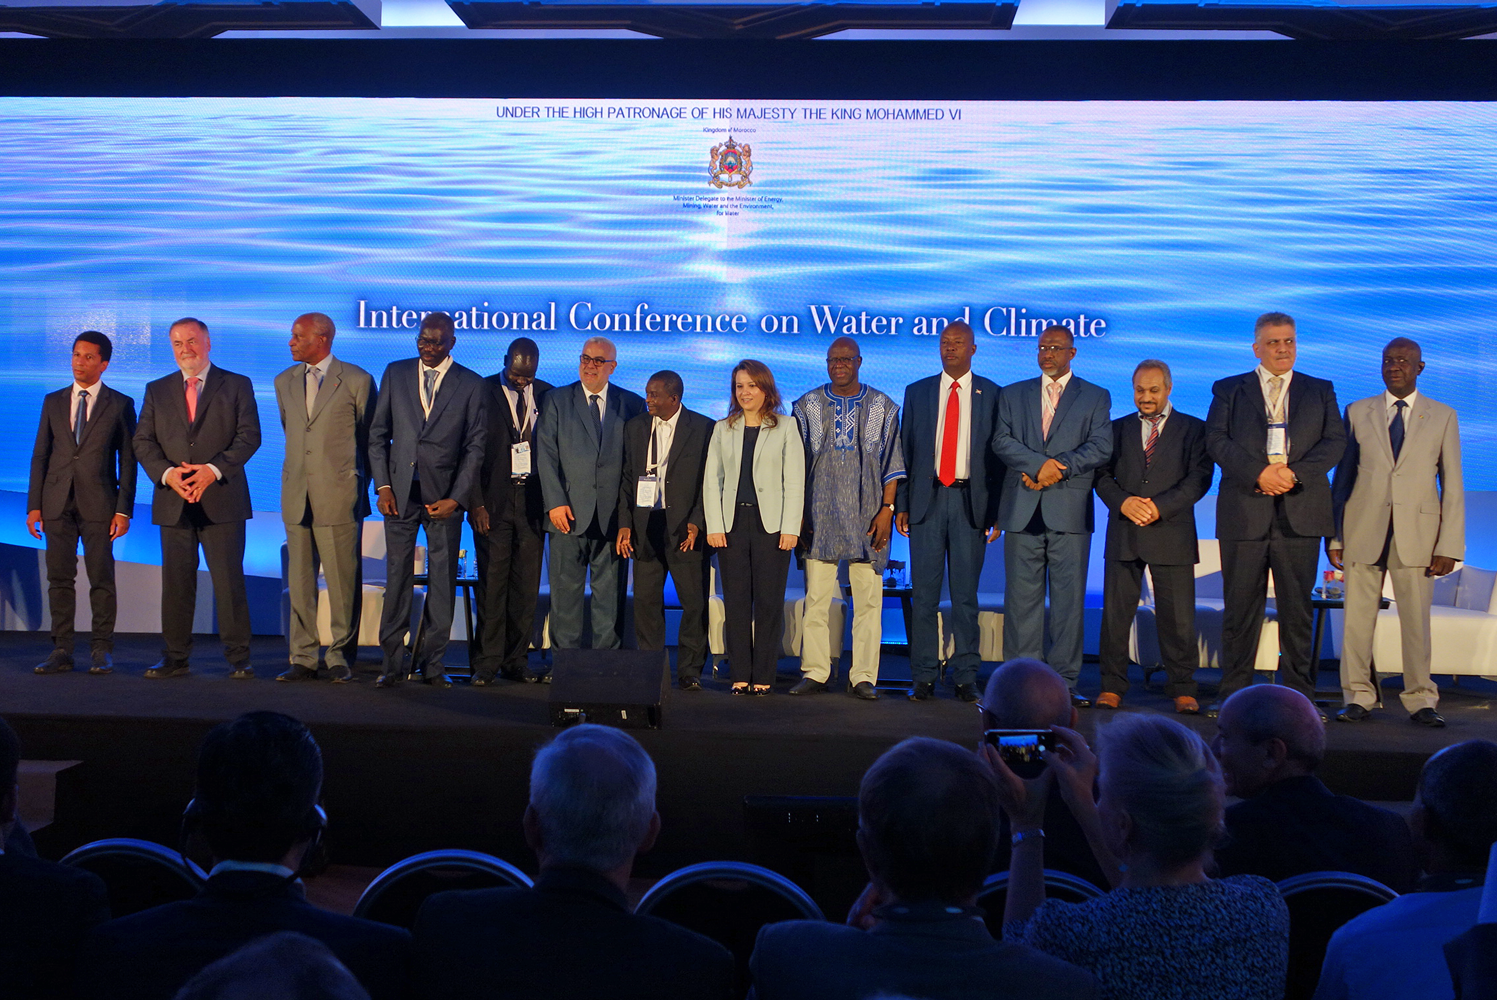 Opening Ceremony of the International Conference on Water and Climate, Rabat, Morocco, 11 July 2016